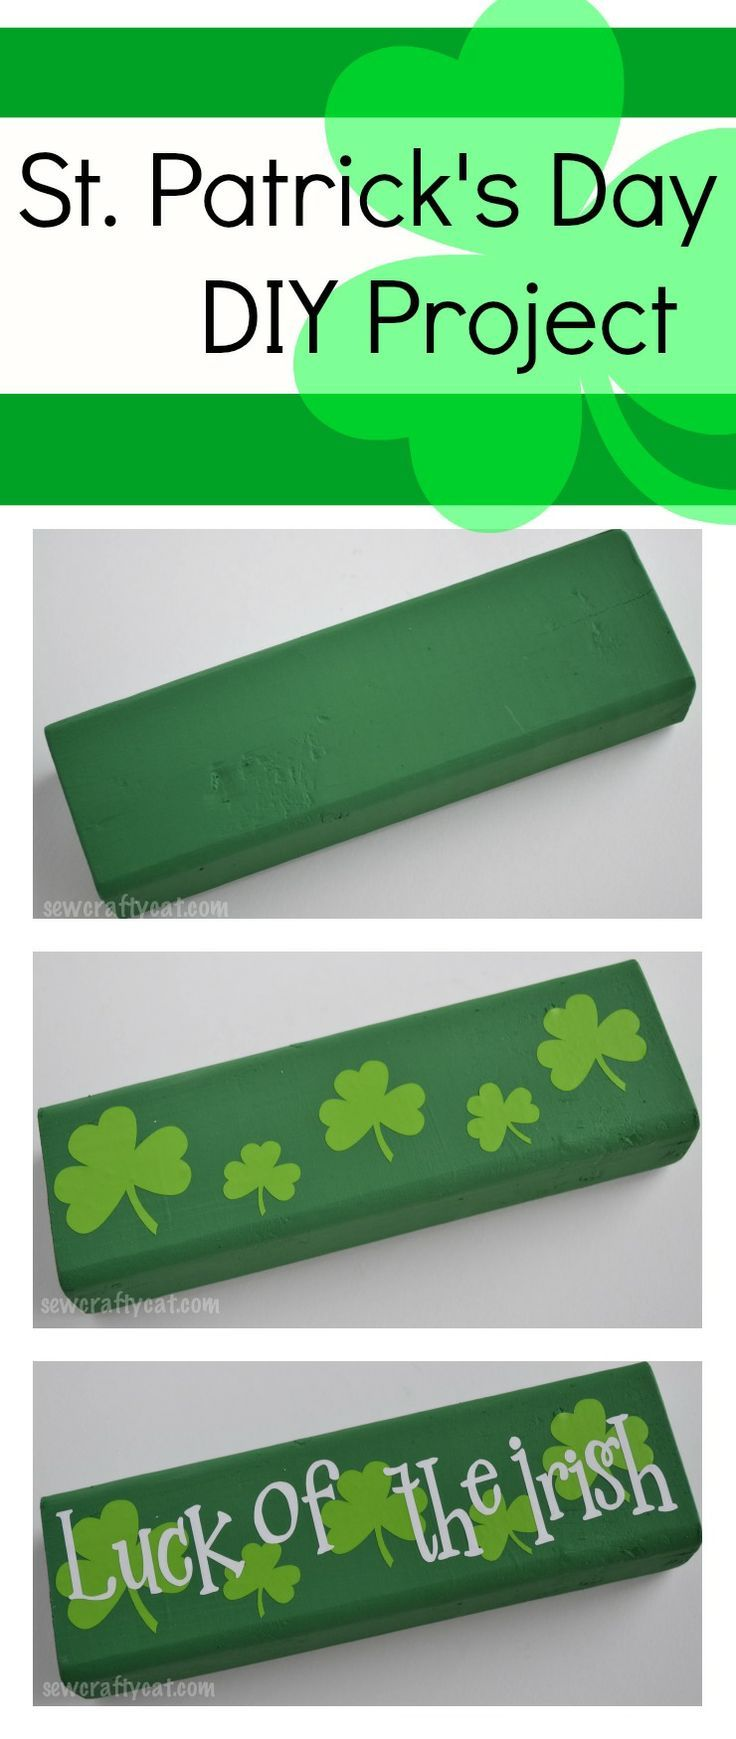 St. Patrick's Day DIY Tutorial | Use your Silhouette Cameo or Cricut to make this cute wood block for St. Paddy's Day. A great project to make to help learn how to layer vinyl.